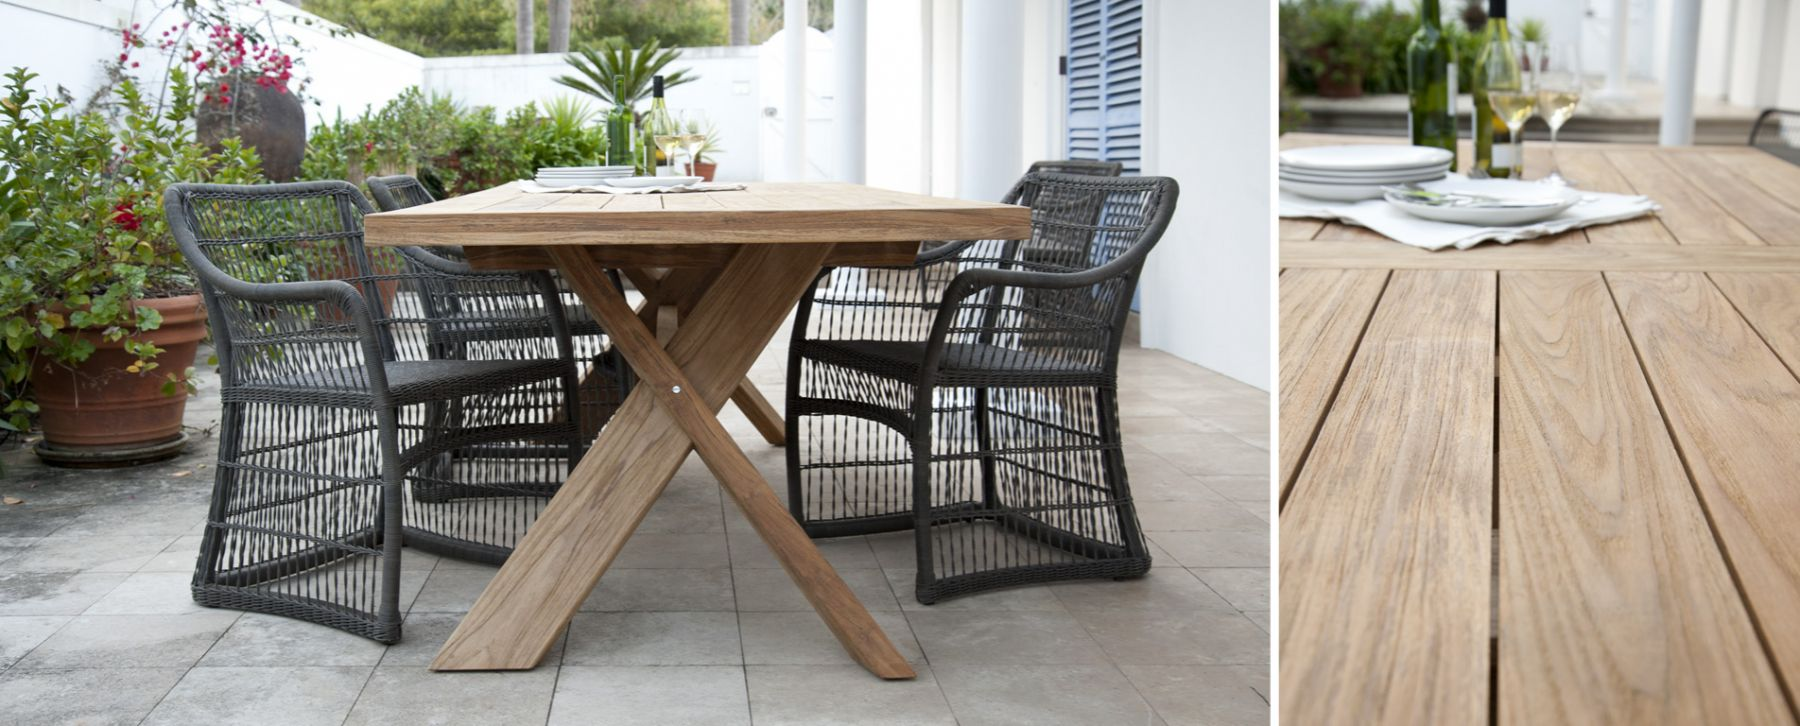 Superior Nixon Dining Table Traditional Teak Outdoor Furniture Restaurants W Elana  Chair 1